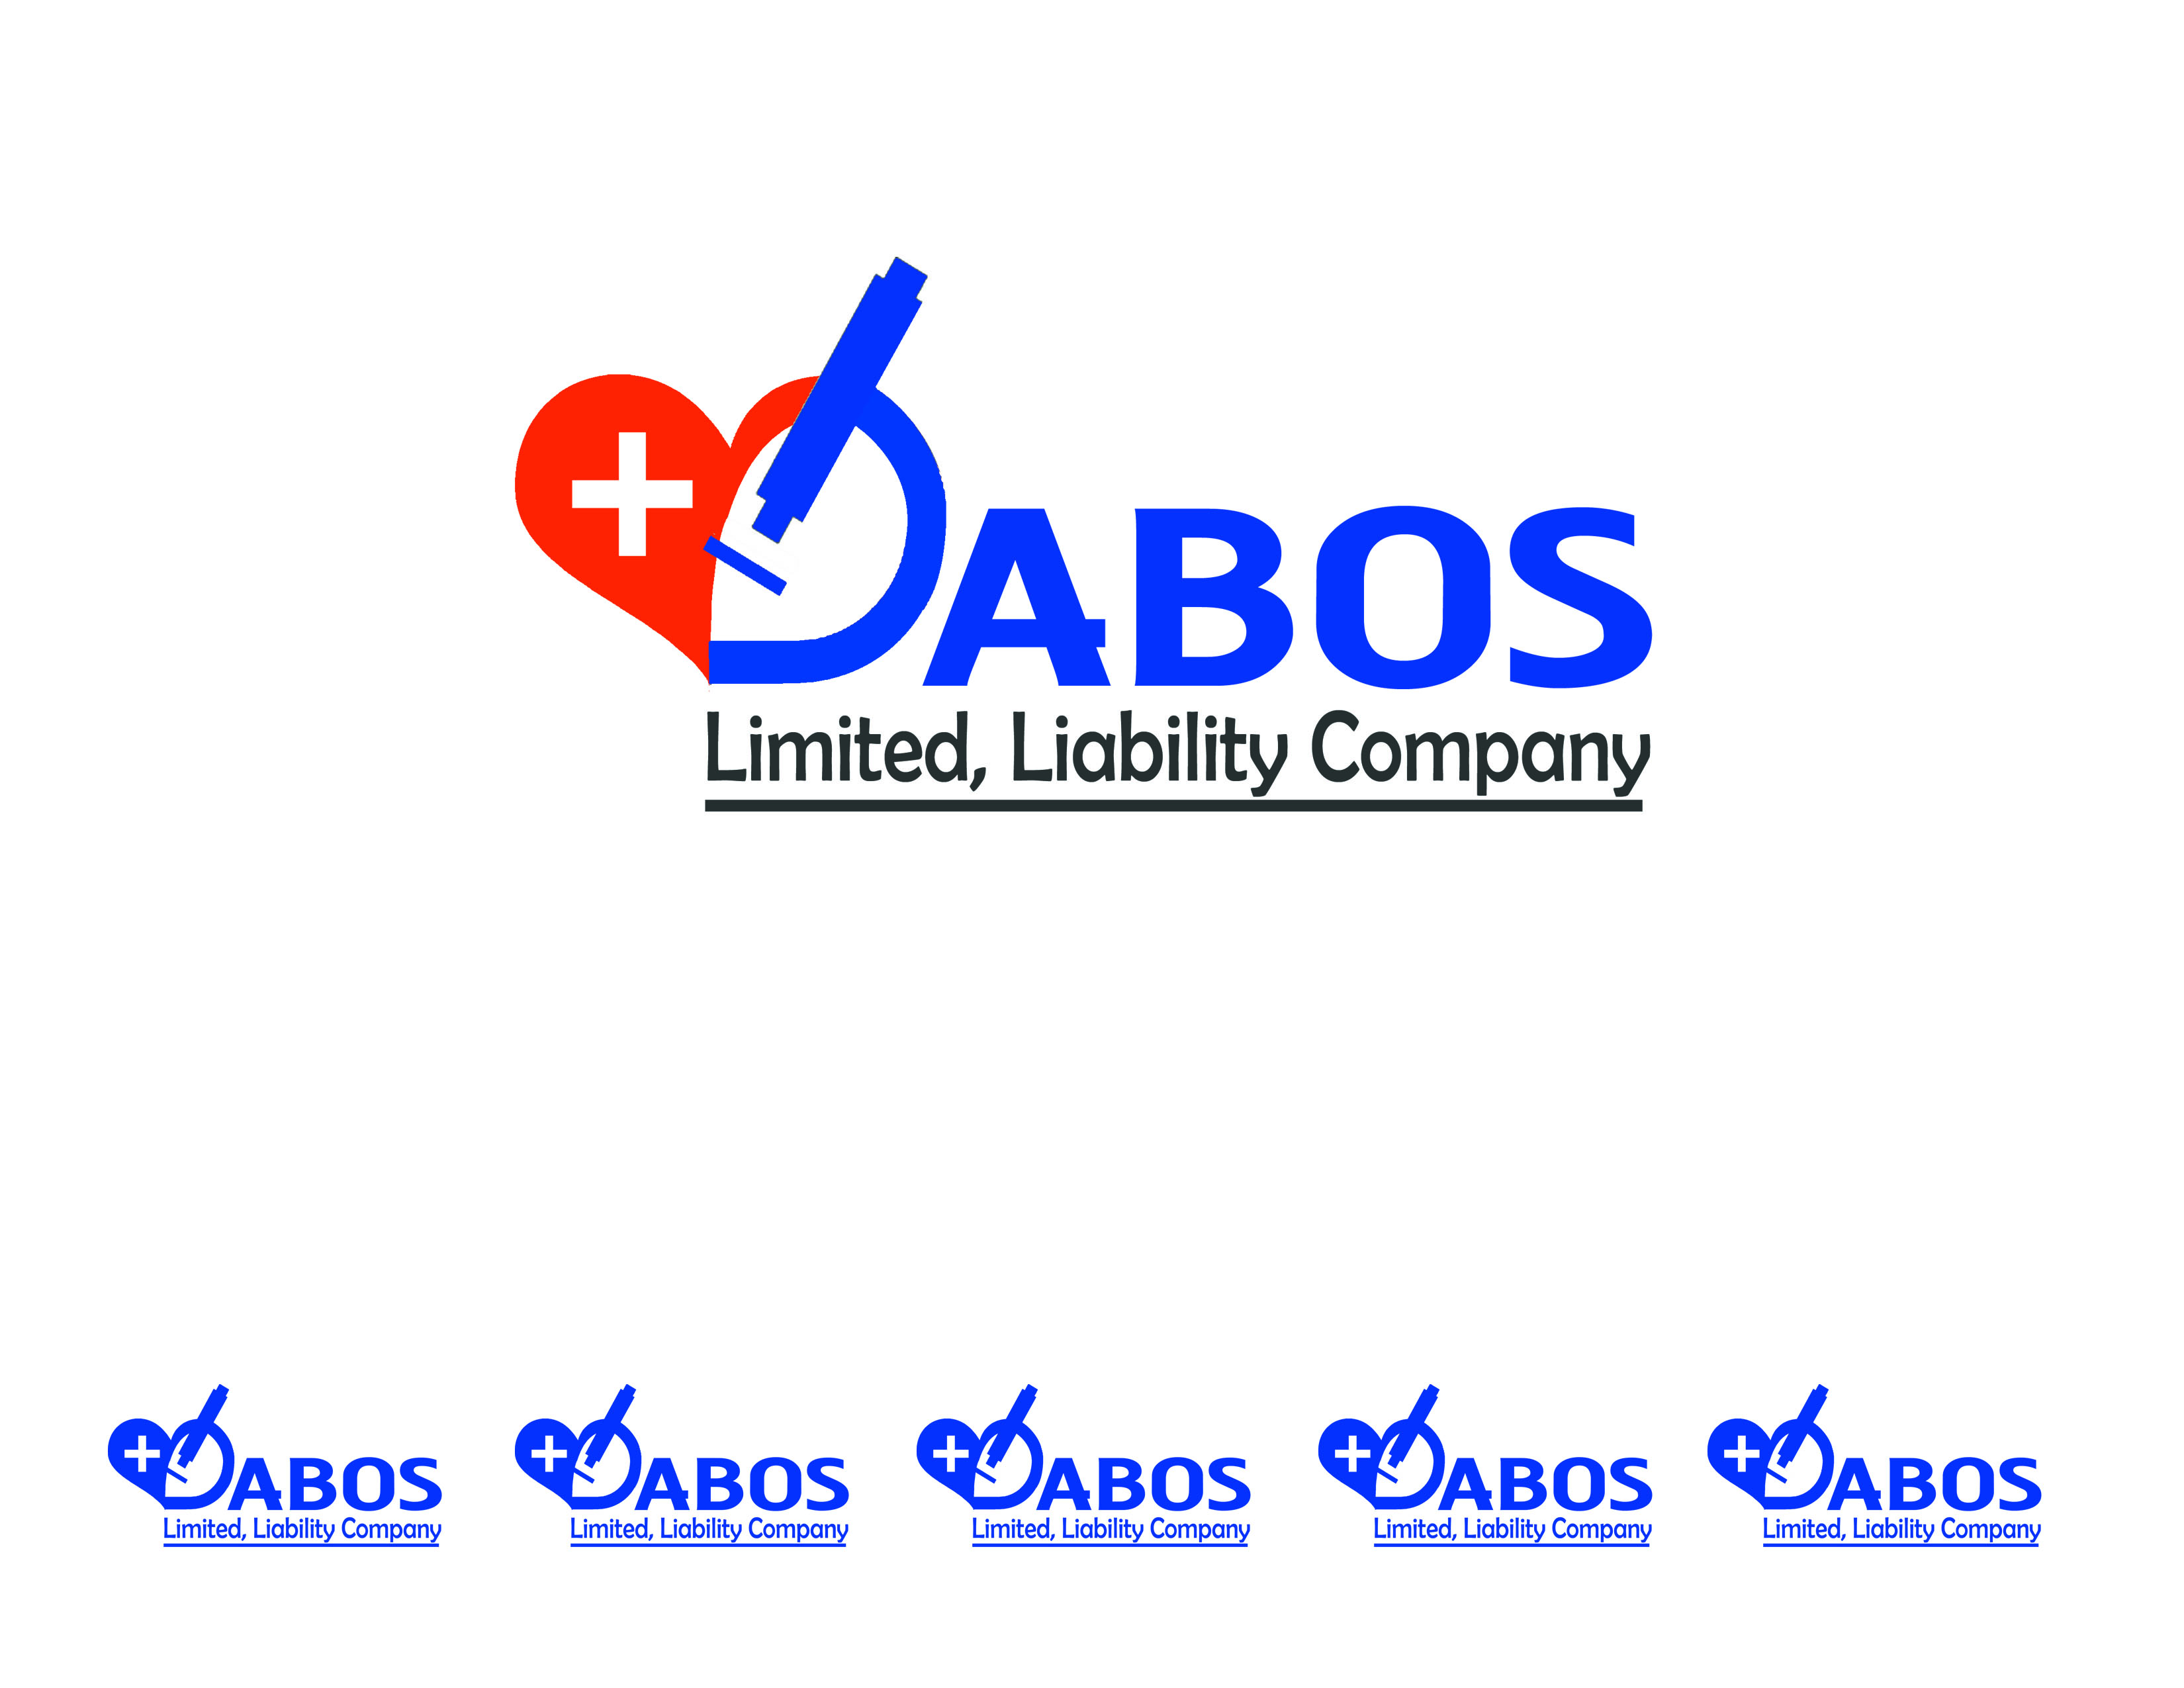 Logo Design by Alan Esclamado - Entry No. 3 in the Logo Design Contest Imaginative Logo Design for DABOS, Limited Liability Company.